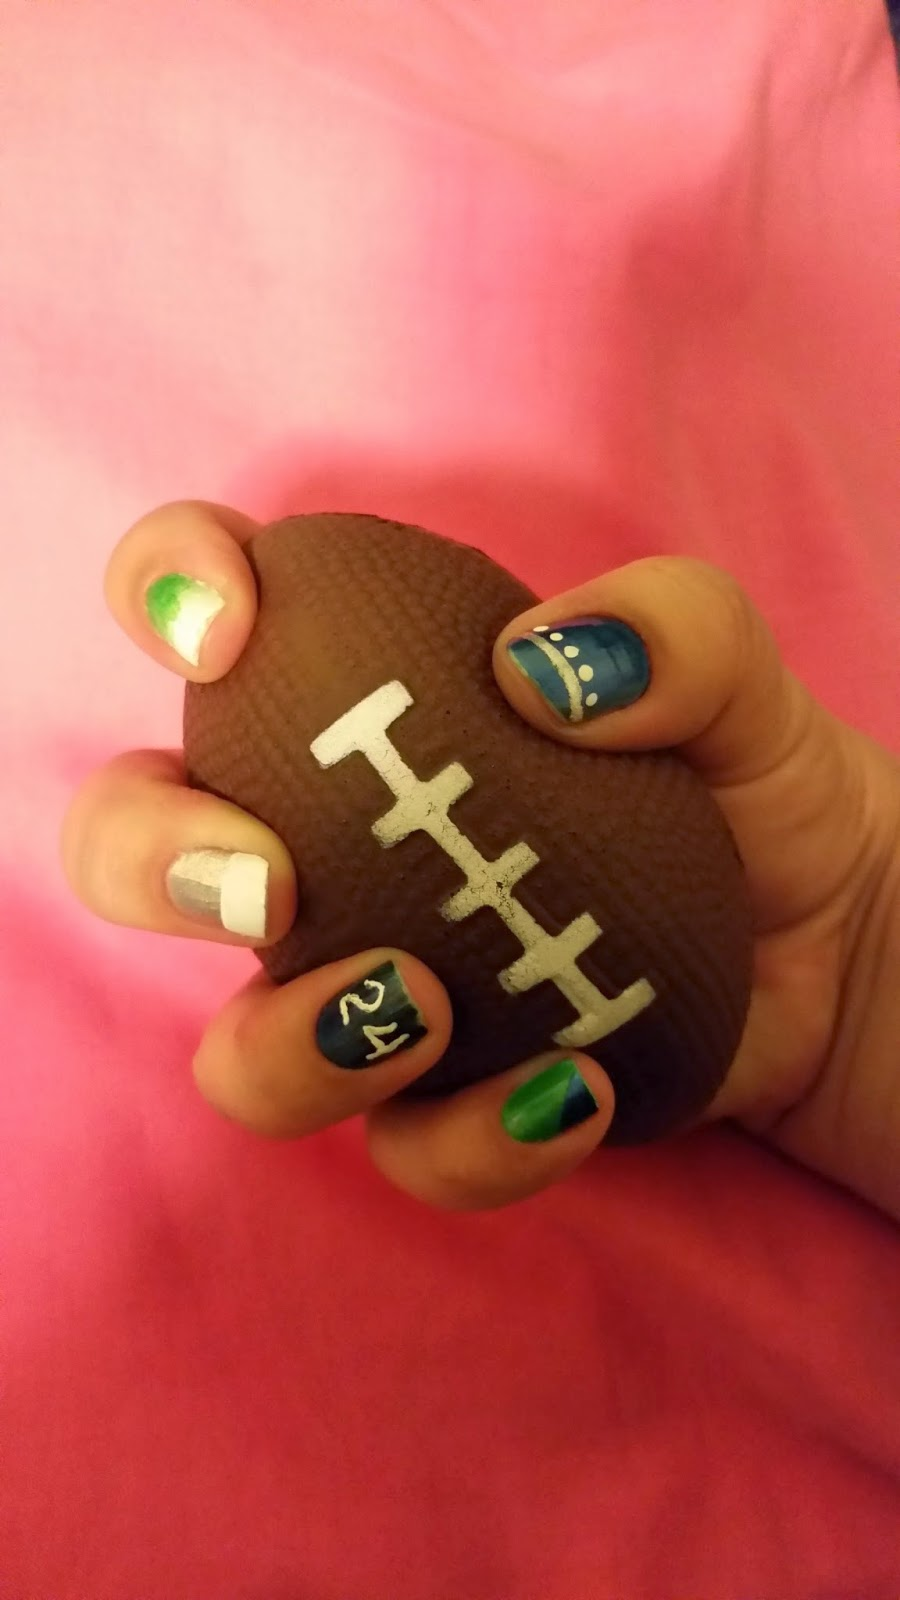 Female Fandom: Nail Art for the Big Game 2015!